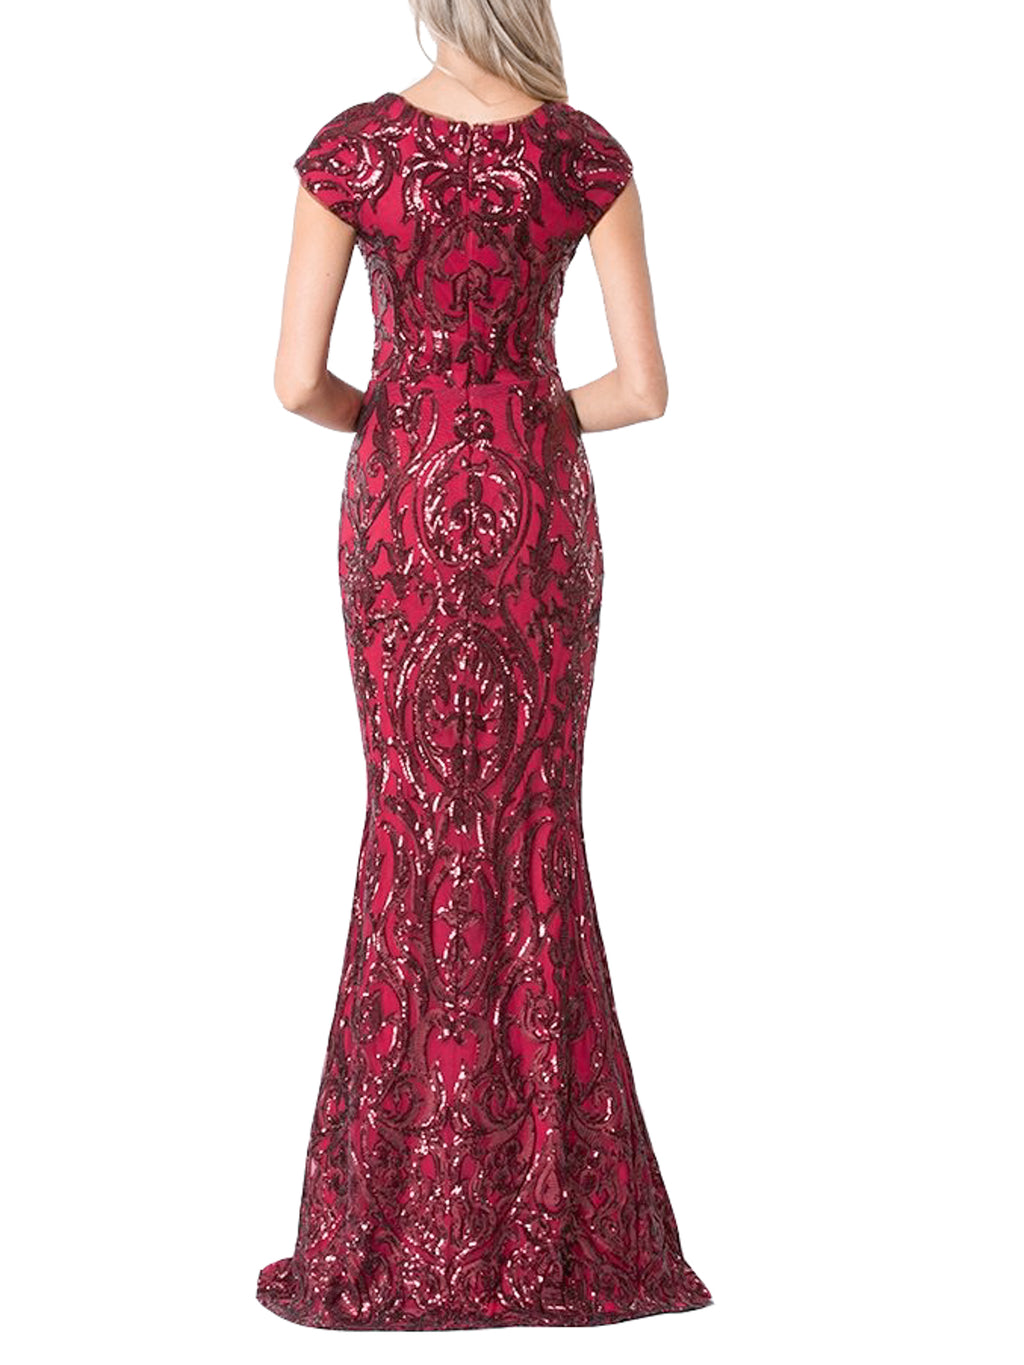 Garnet Cap Sleeved Patterned Sequined Gown - Bariano - Covetella Dress Rentals